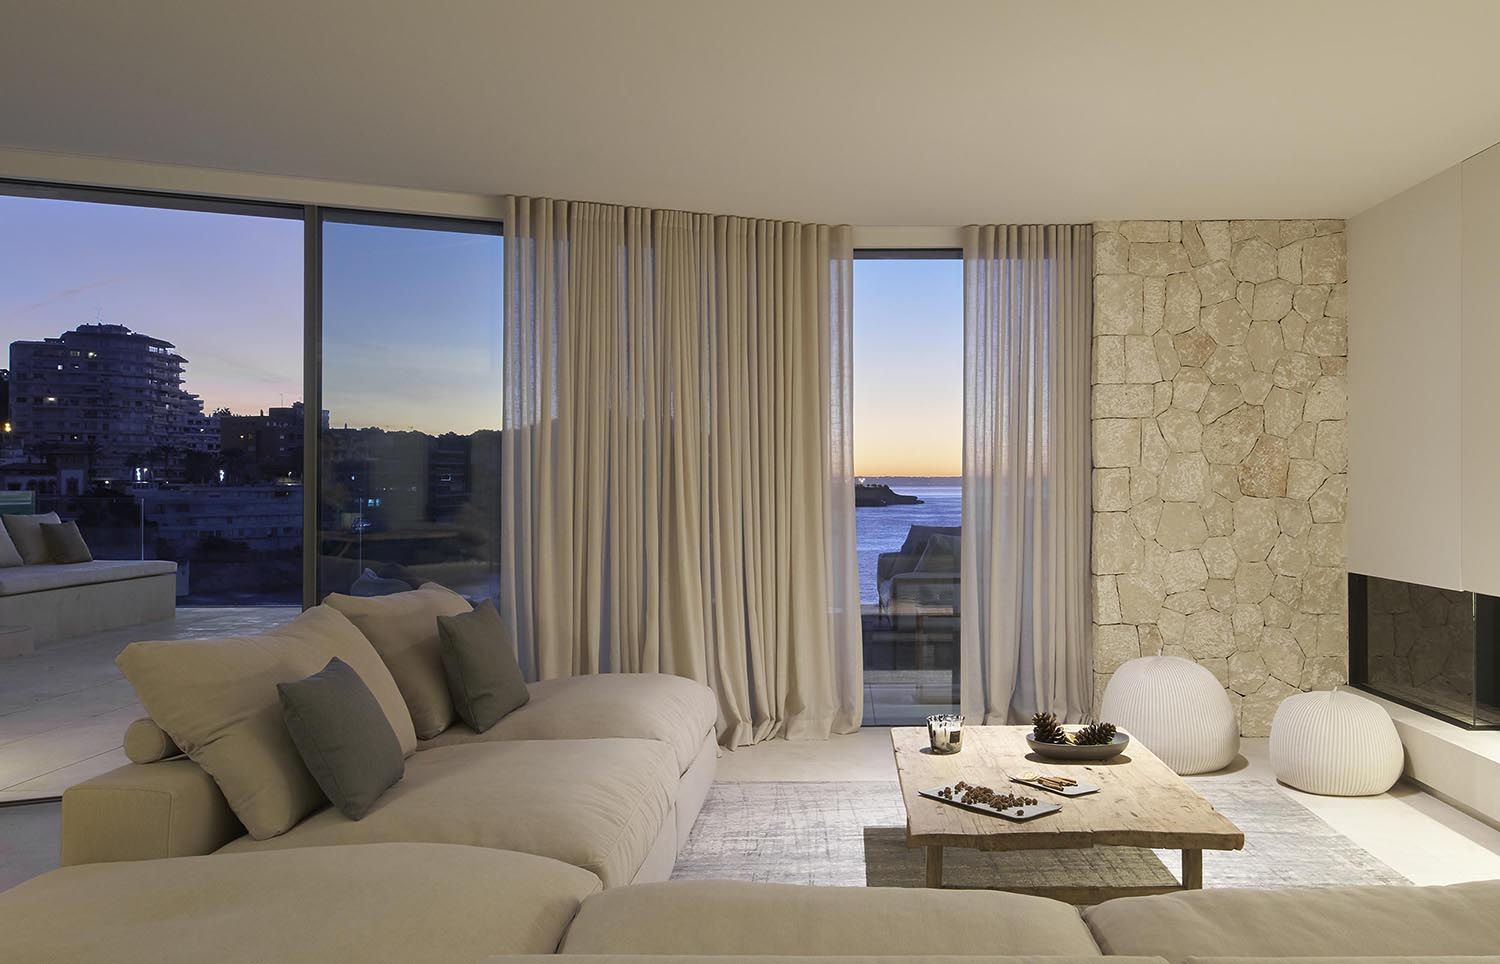 14-mallorcah-proah-art-sanchez-architecture-interior-design-photographer-mallorca-fotografia-video.jpg